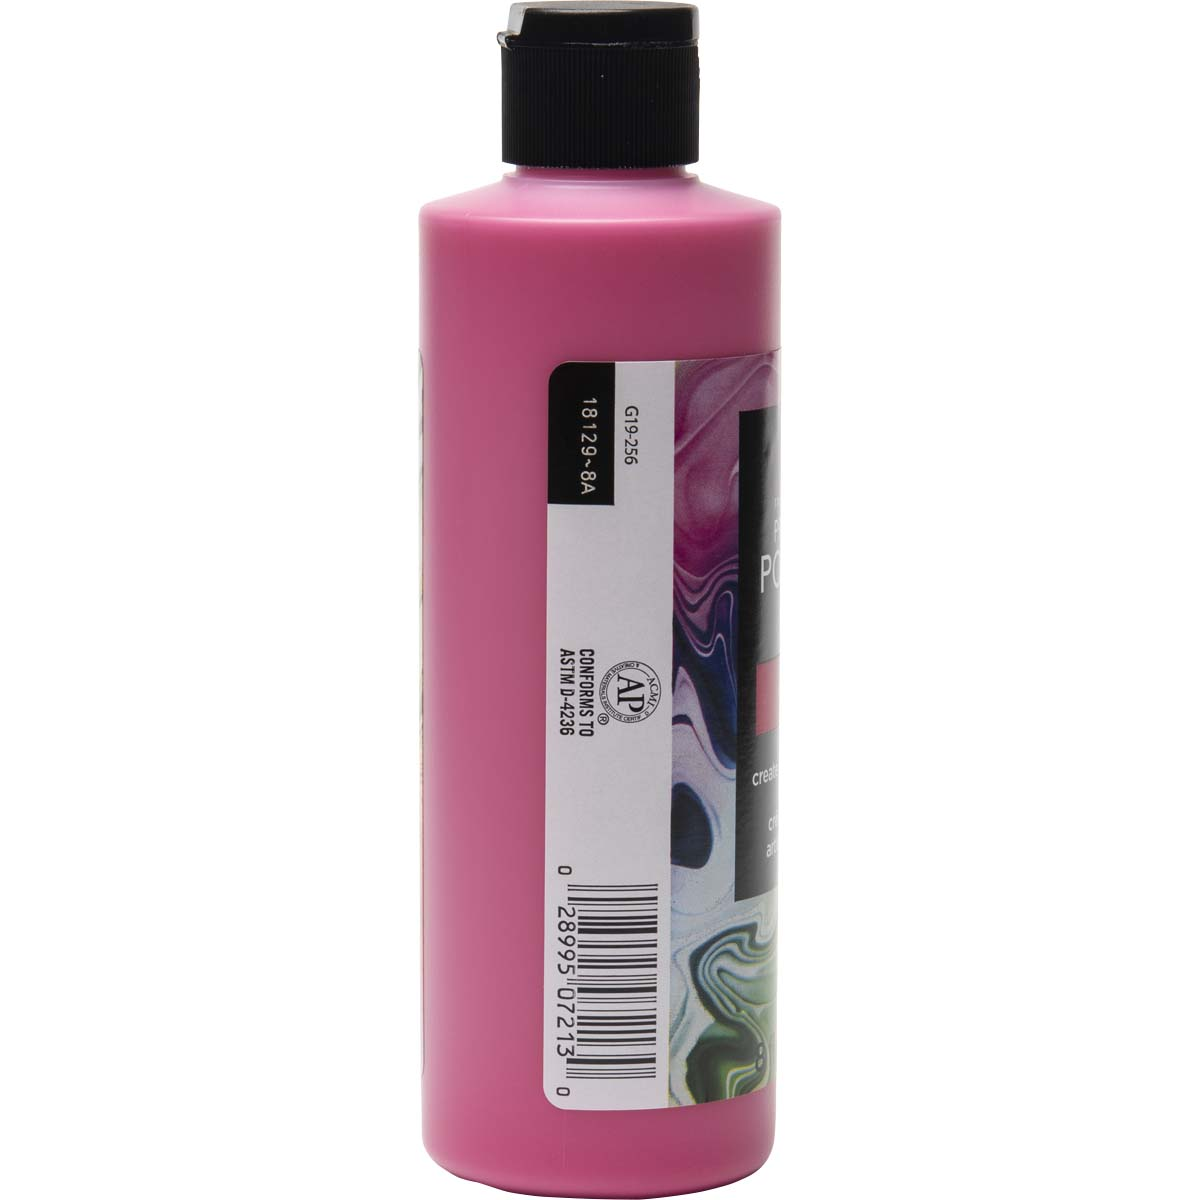 FolkArt ® Pre-mixed Pouring Paint - Bright Pink, 8 oz. - 7213